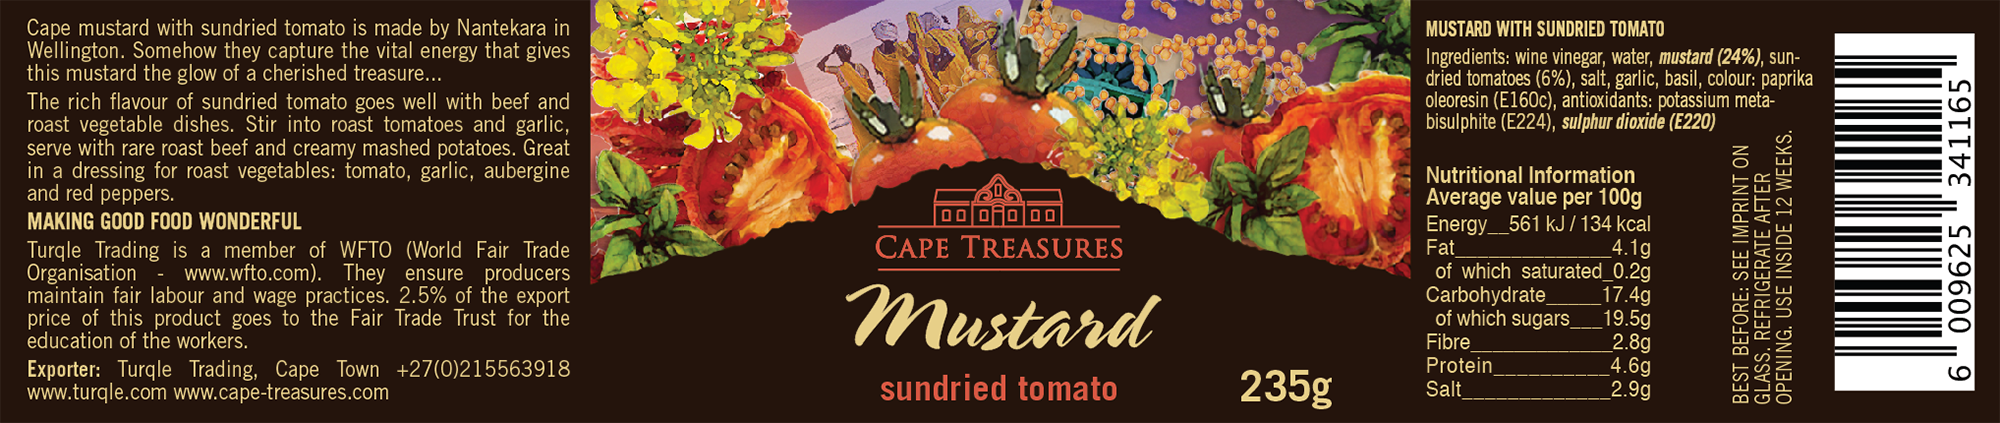 Cape Treasures Sundried Tomato Mustard label